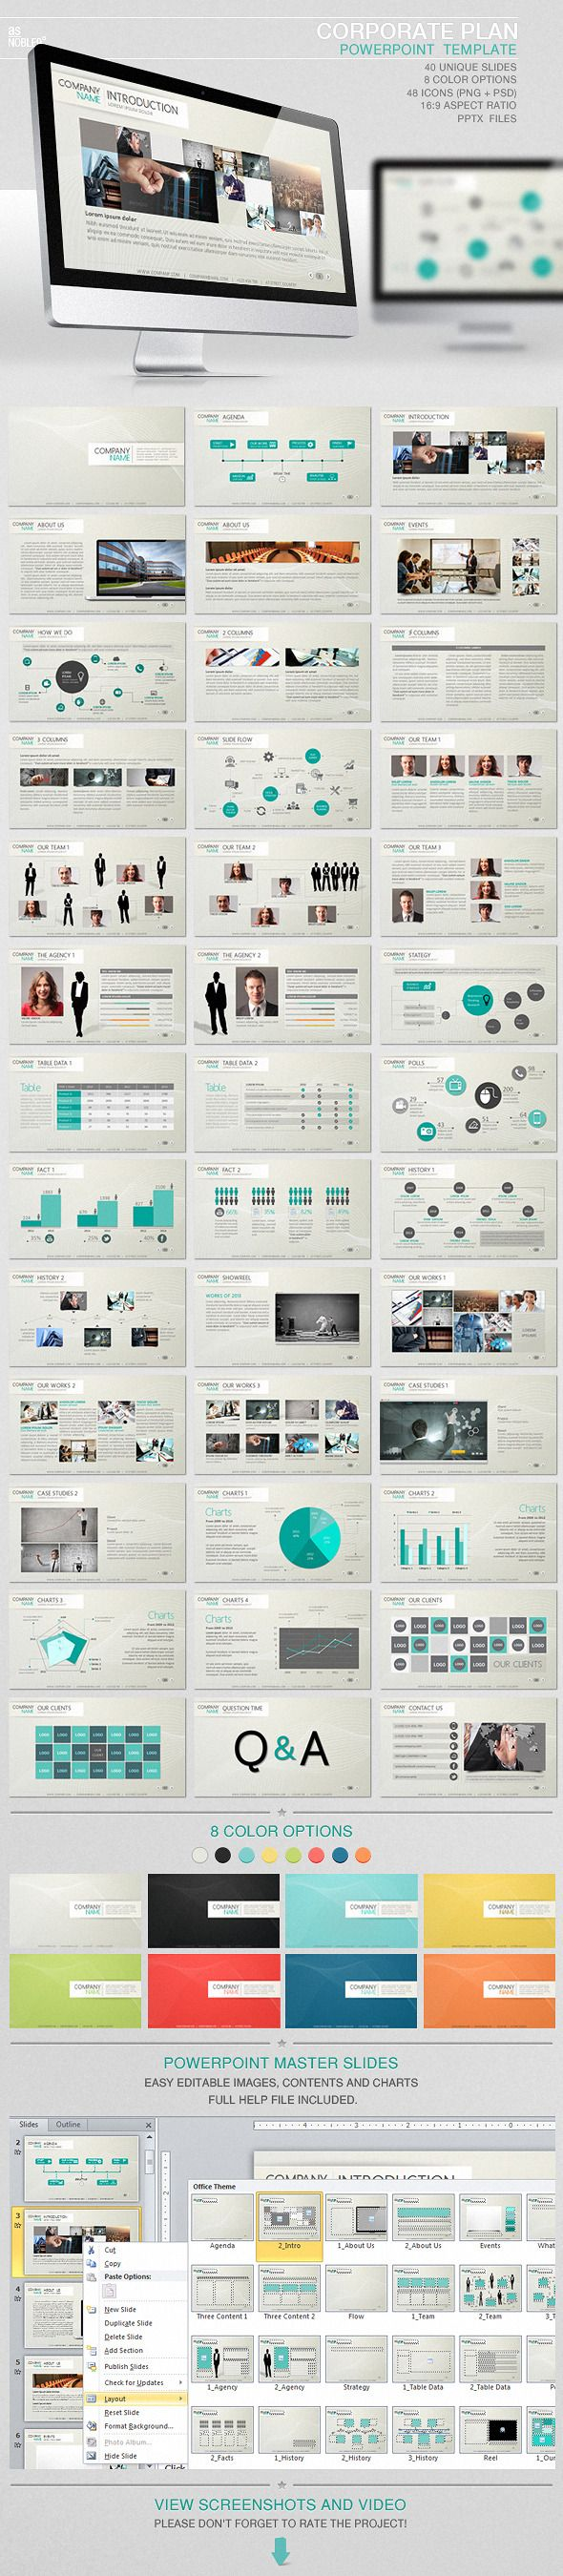 Corporate Plan PowerPoint Template - PowerPoint Templates Presentation Templates